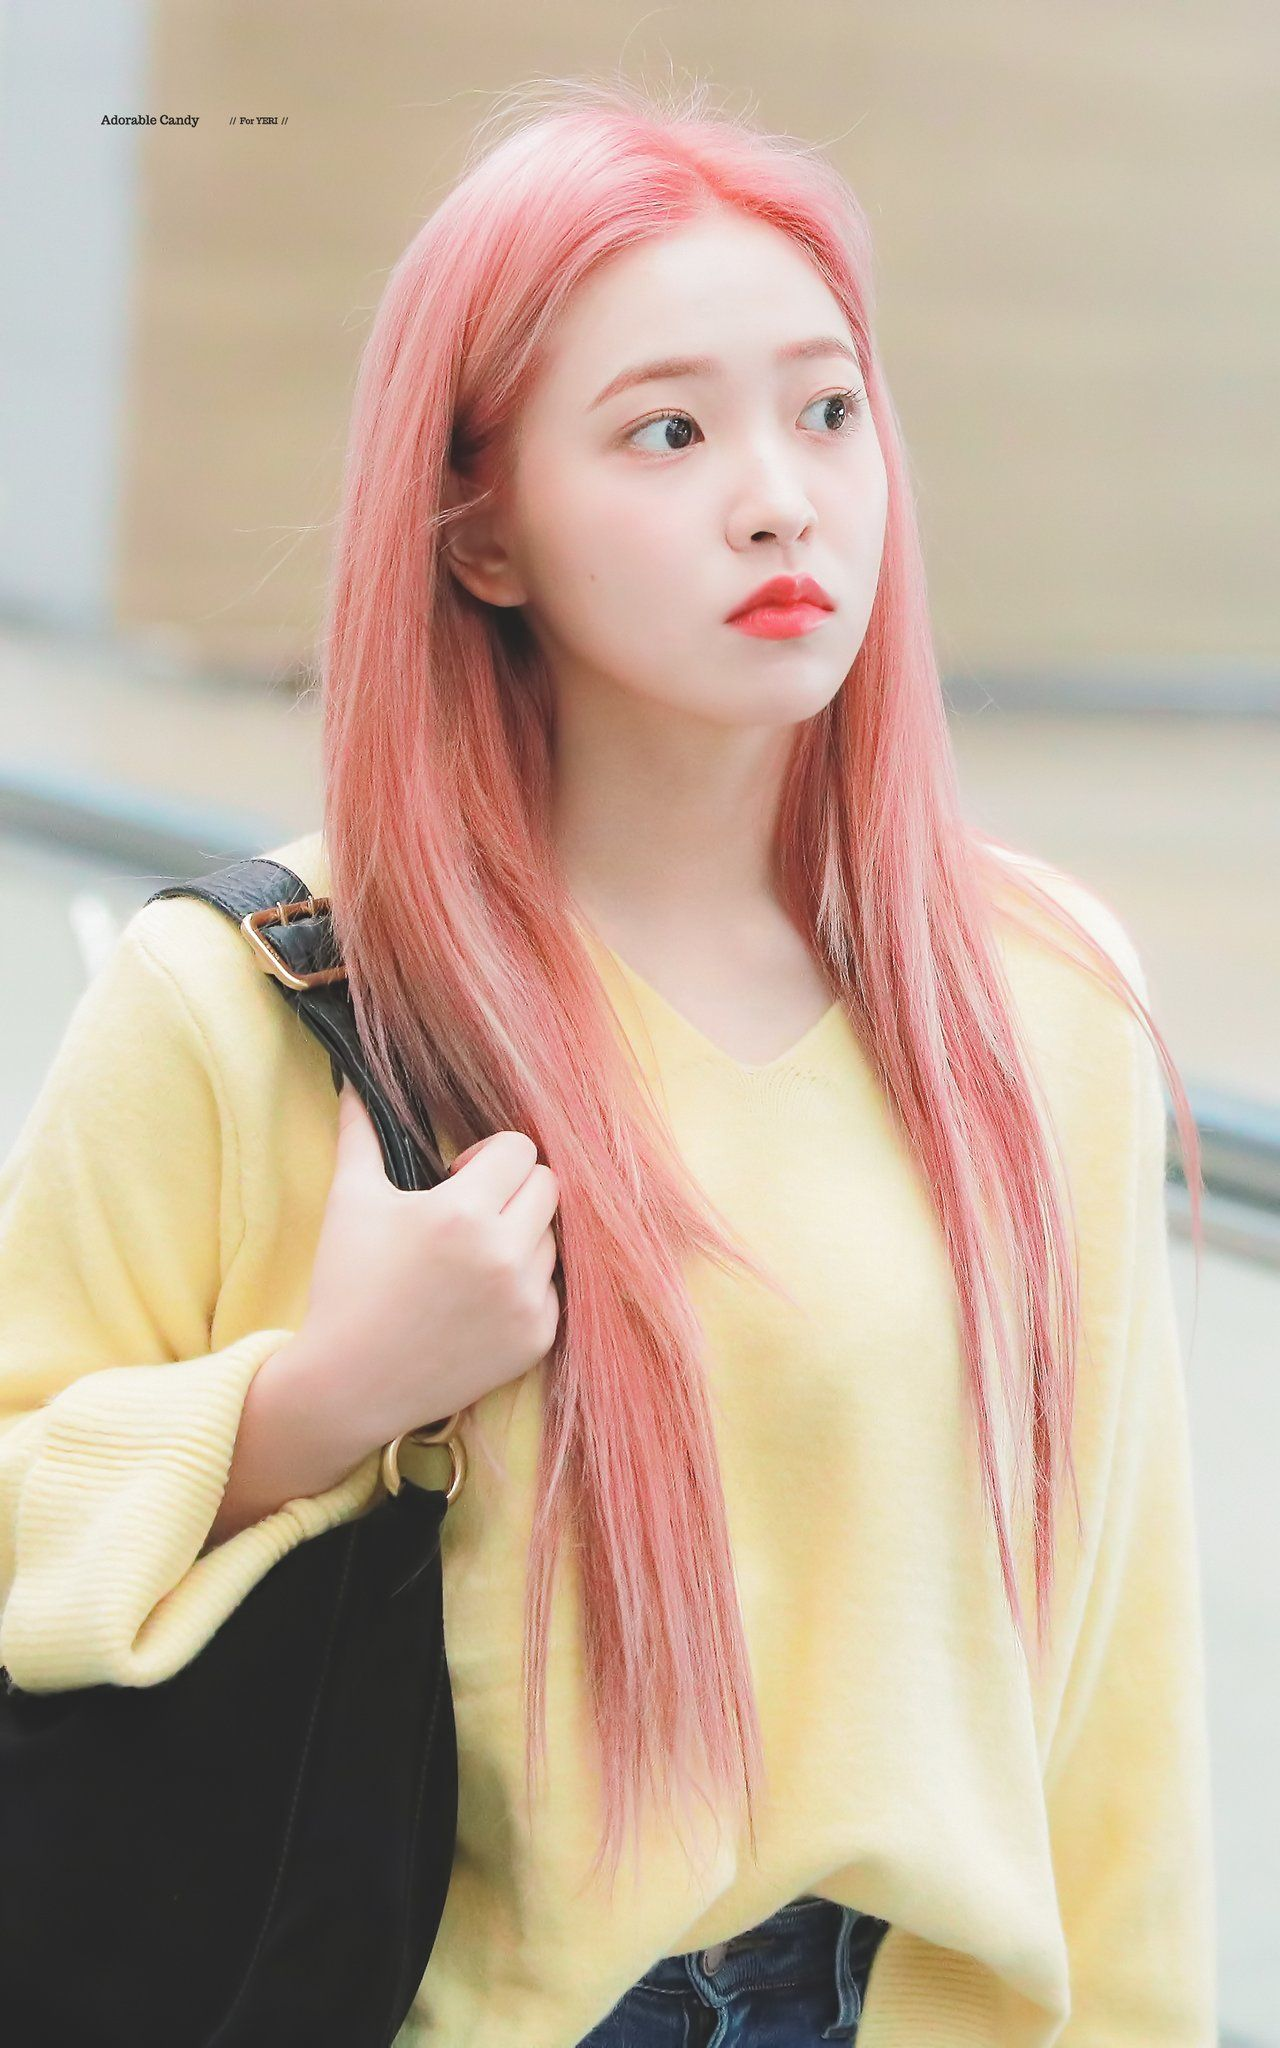 Adorable Candy On Twitter Pink Hair Red Velvet Girl With Pink Hair